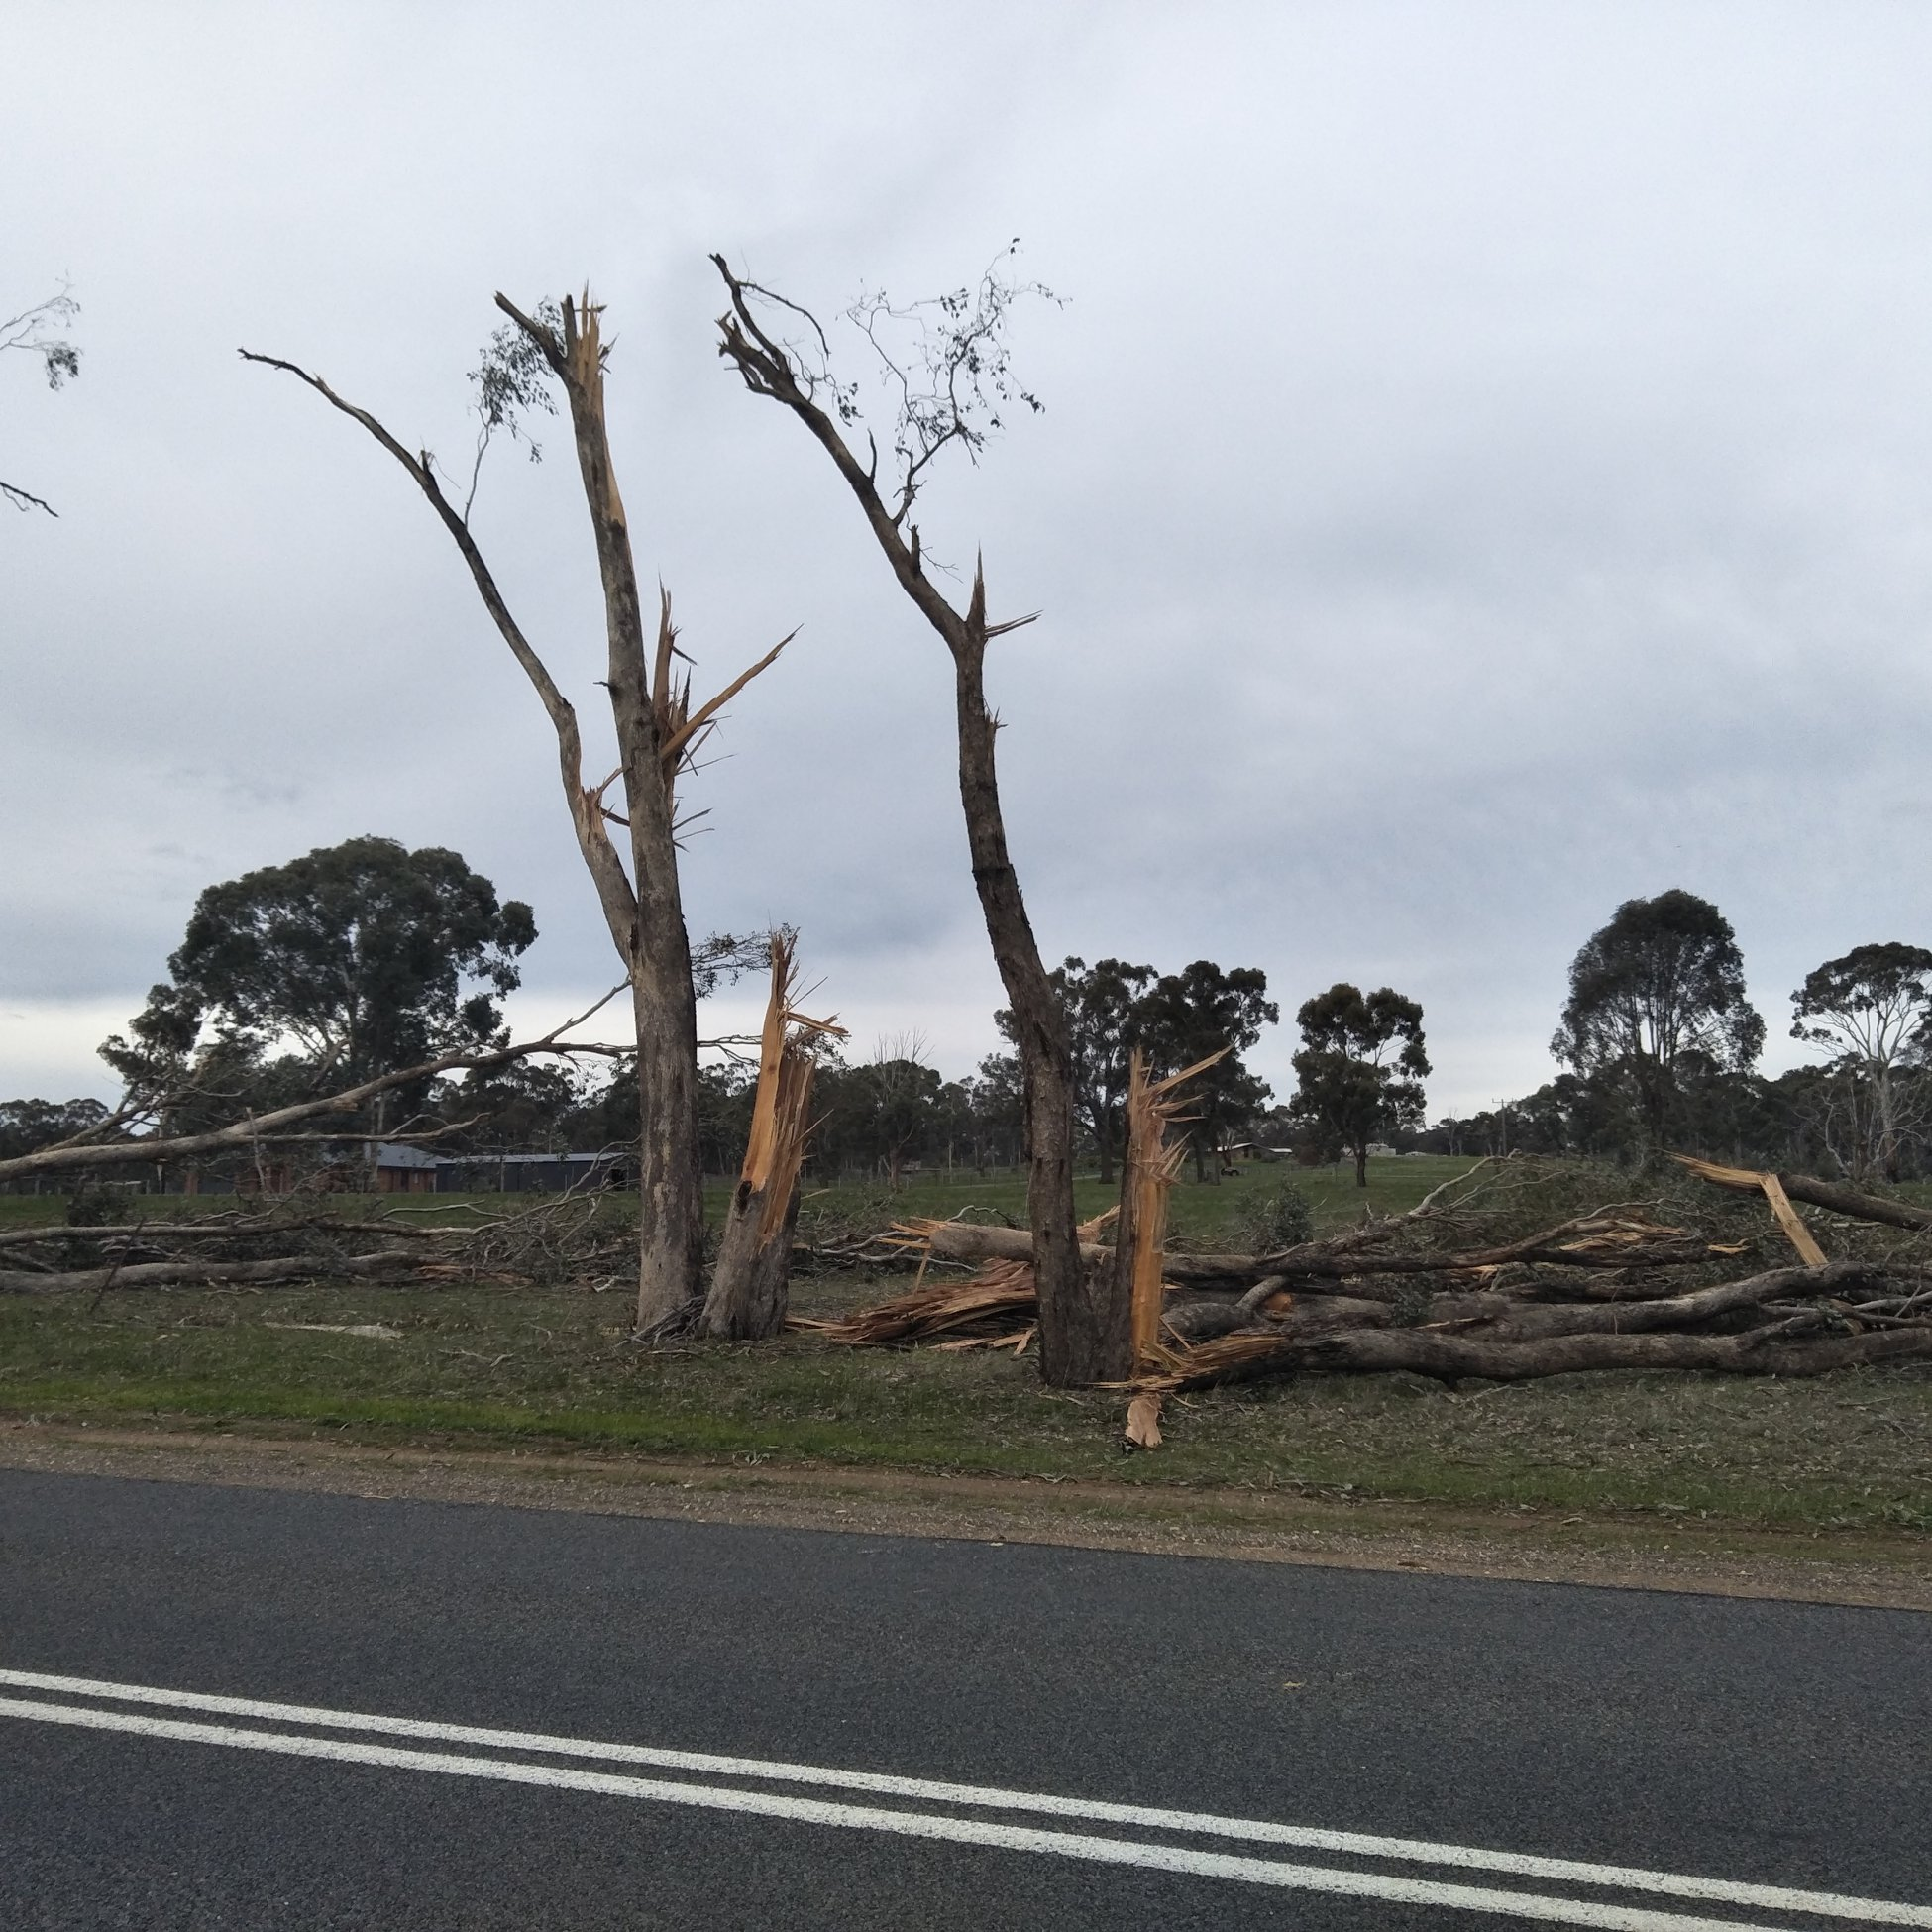 photo: Bureau of Meteorology;link: https://gallery.windy.com/albums/a/tornadoes-axe-creek-australia-2019.jpg;desc: Trees shredded from tornado in Axe Creek near Bendigo, Vic, 29 June 2019;